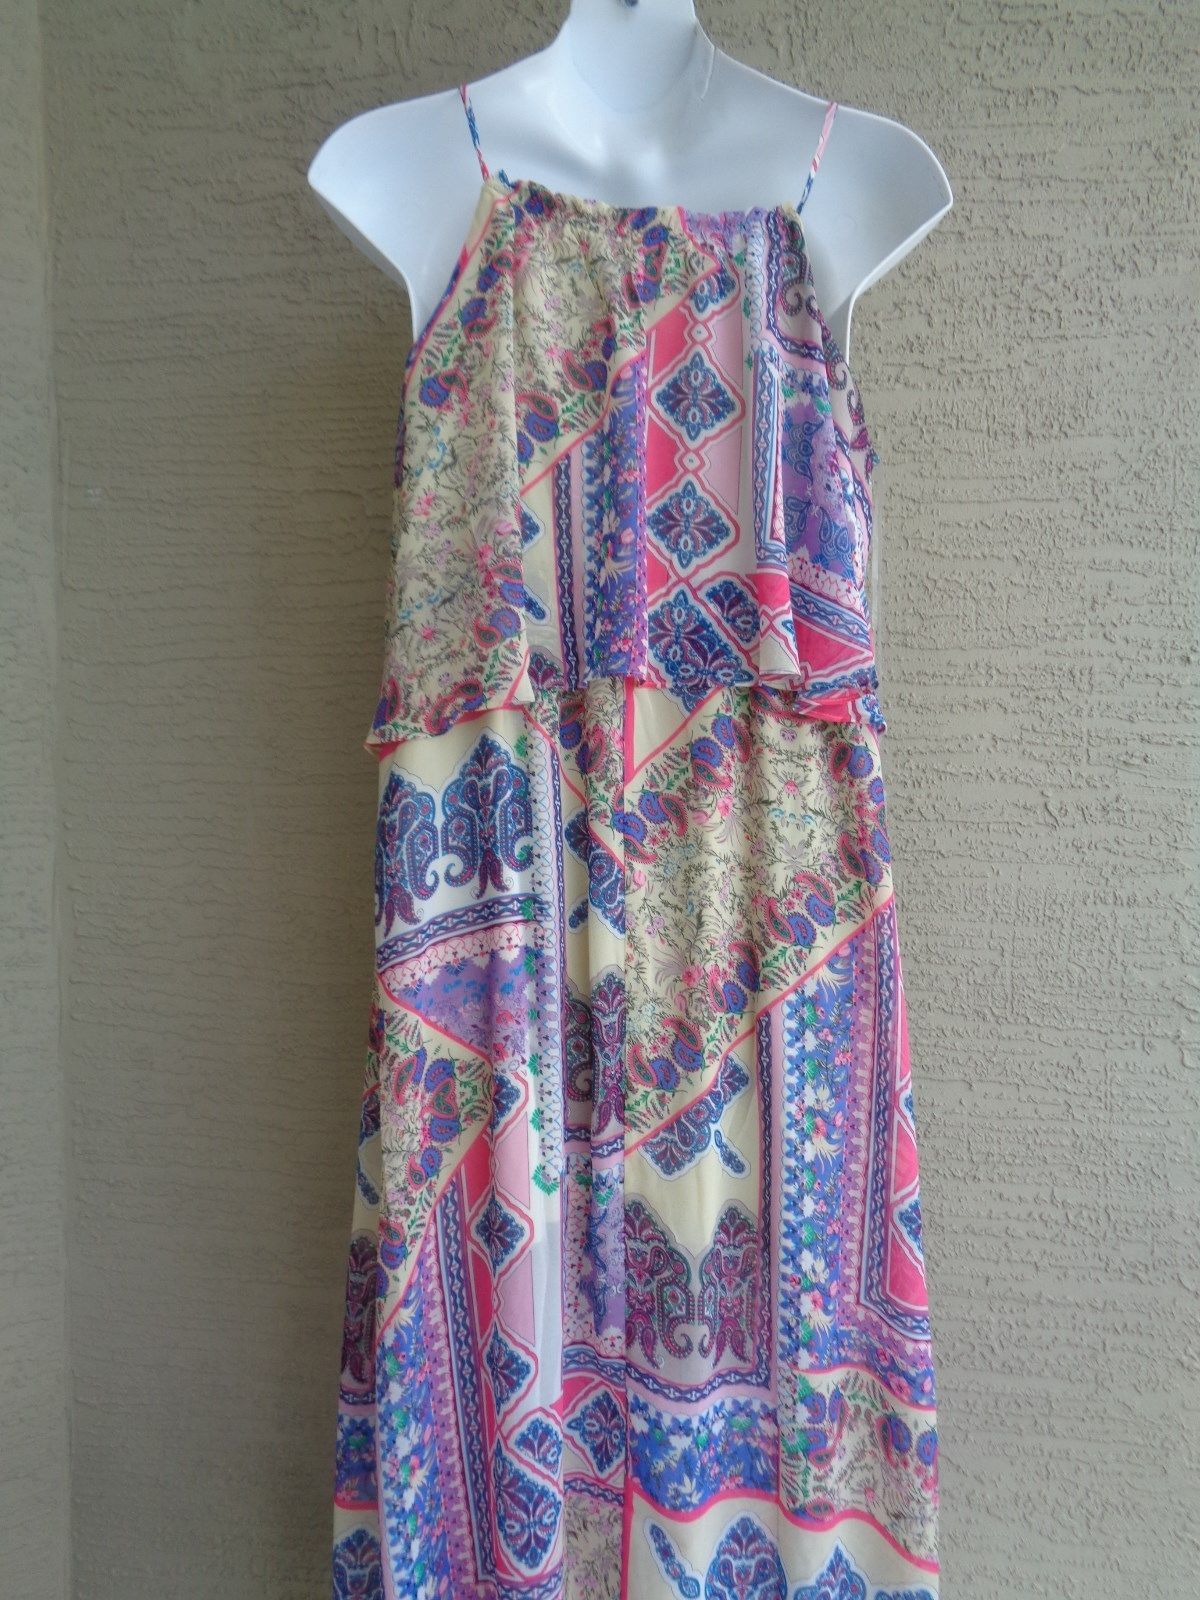 New Directions 2X Printed Popover Polyester Chiffon Fabric Maxi Dress  msrp $68.